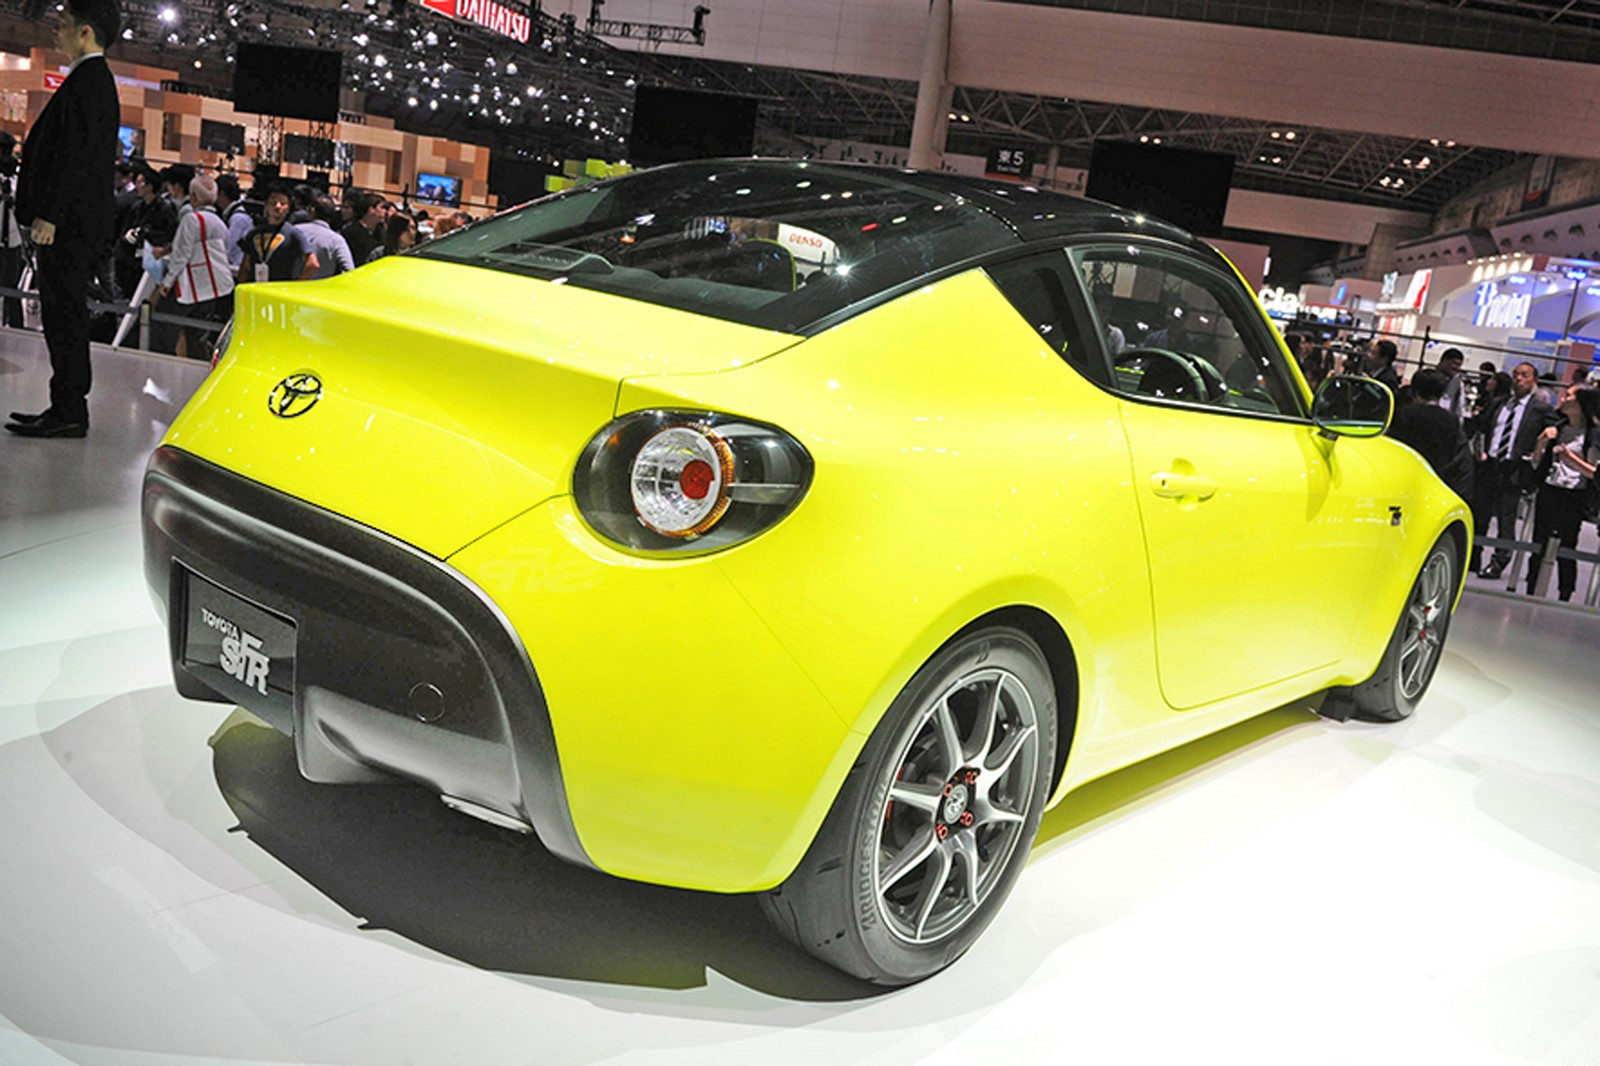 Toyota S-FR Concept (2)